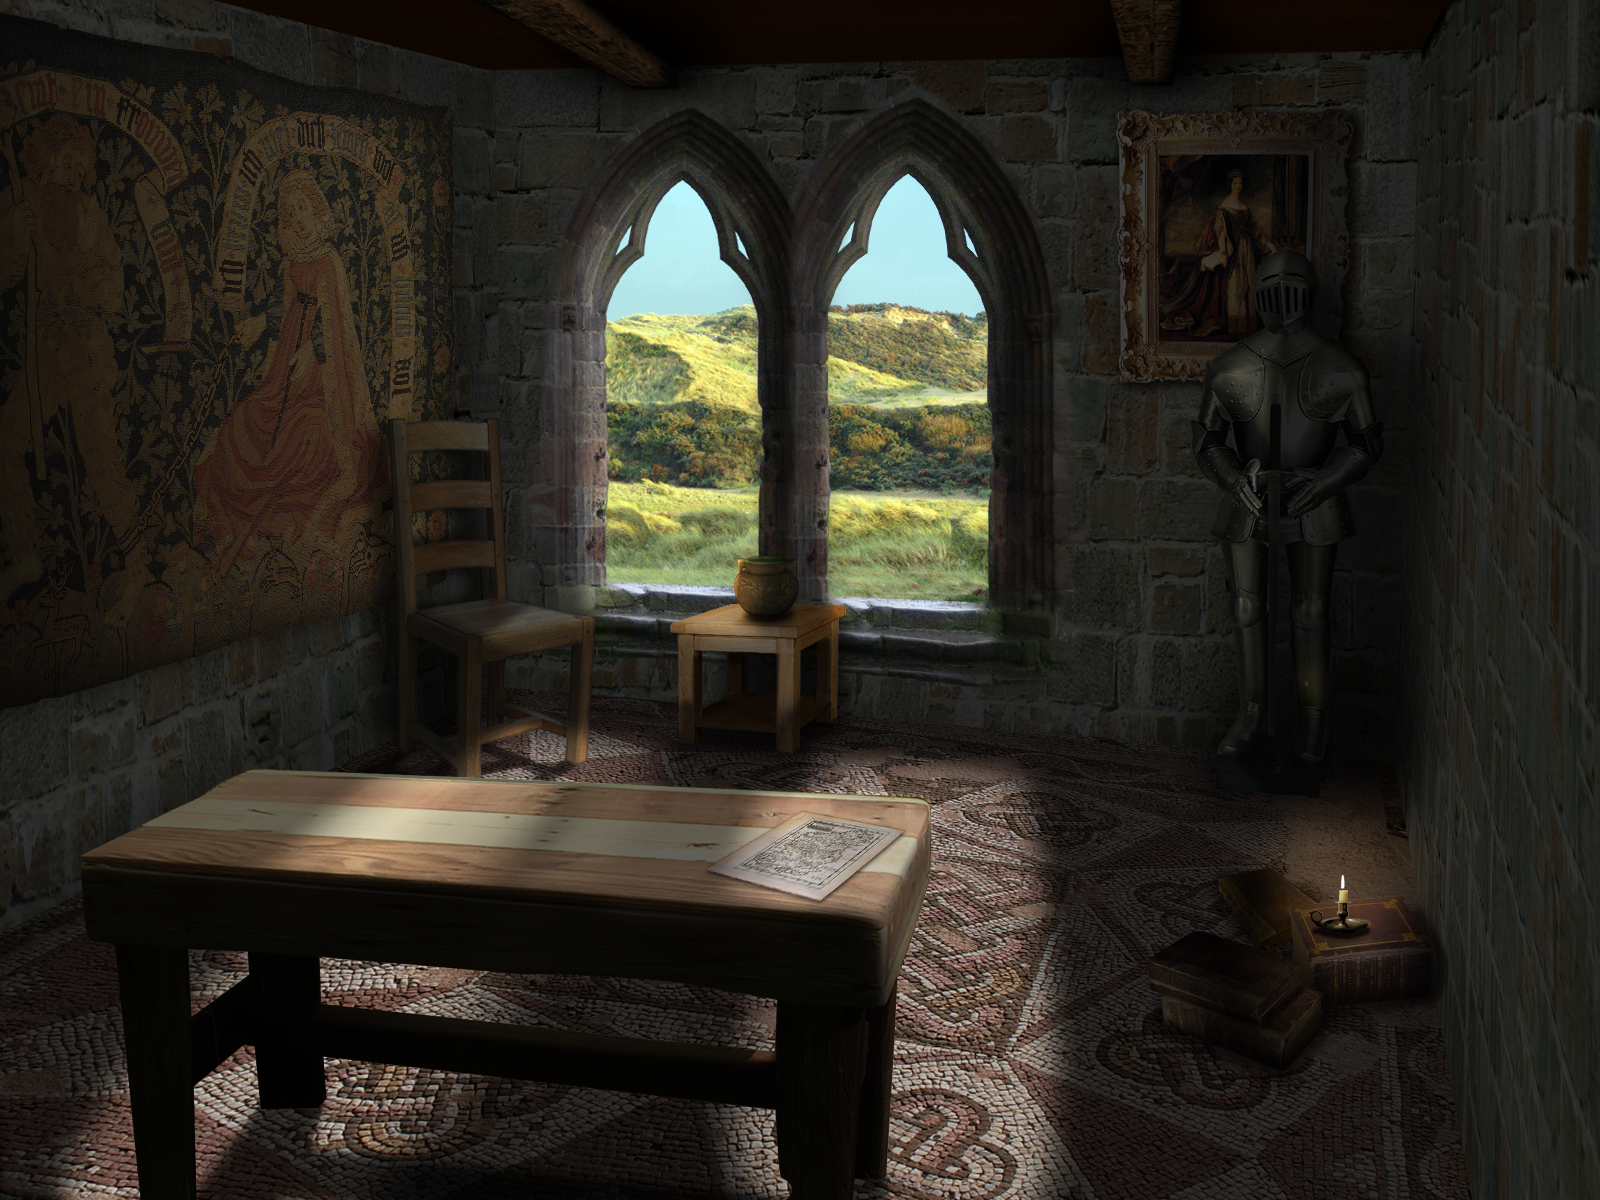 Themed Bedroom Composite Medieval Room By Runninlow0n1nk On Deviantart